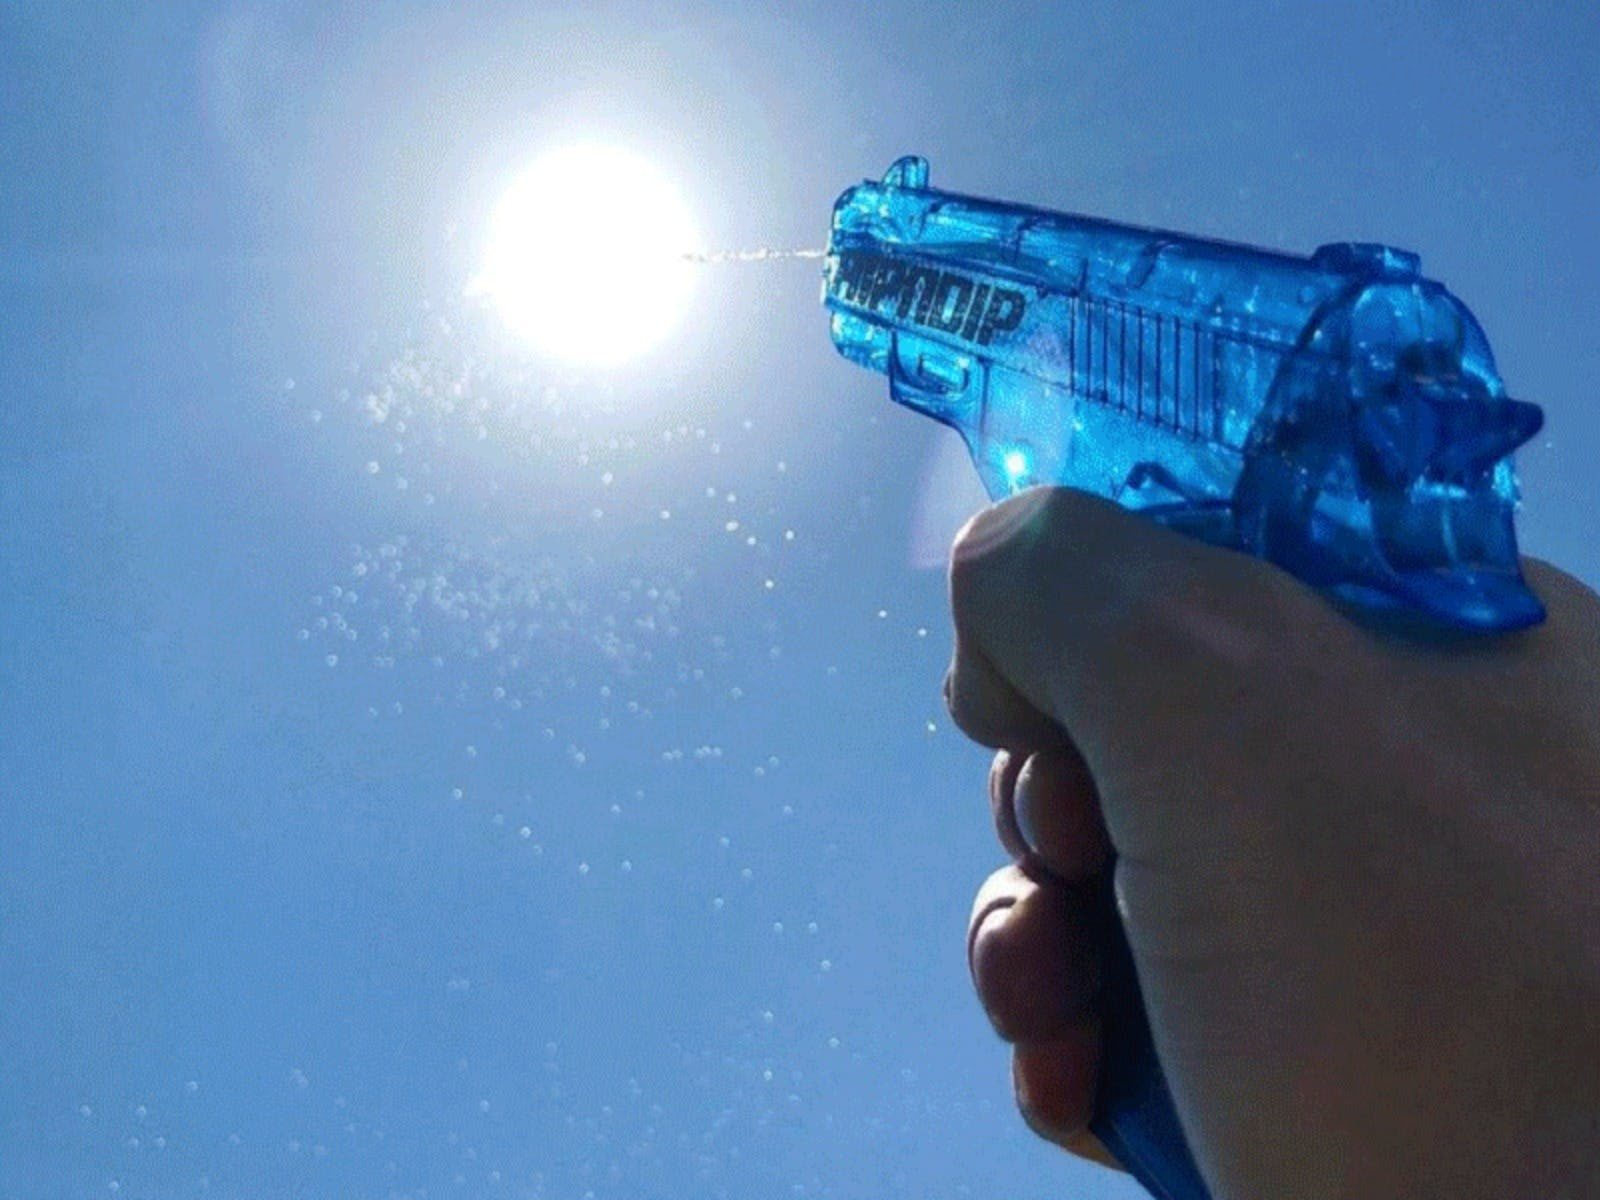 Water Pistol pointing to sky